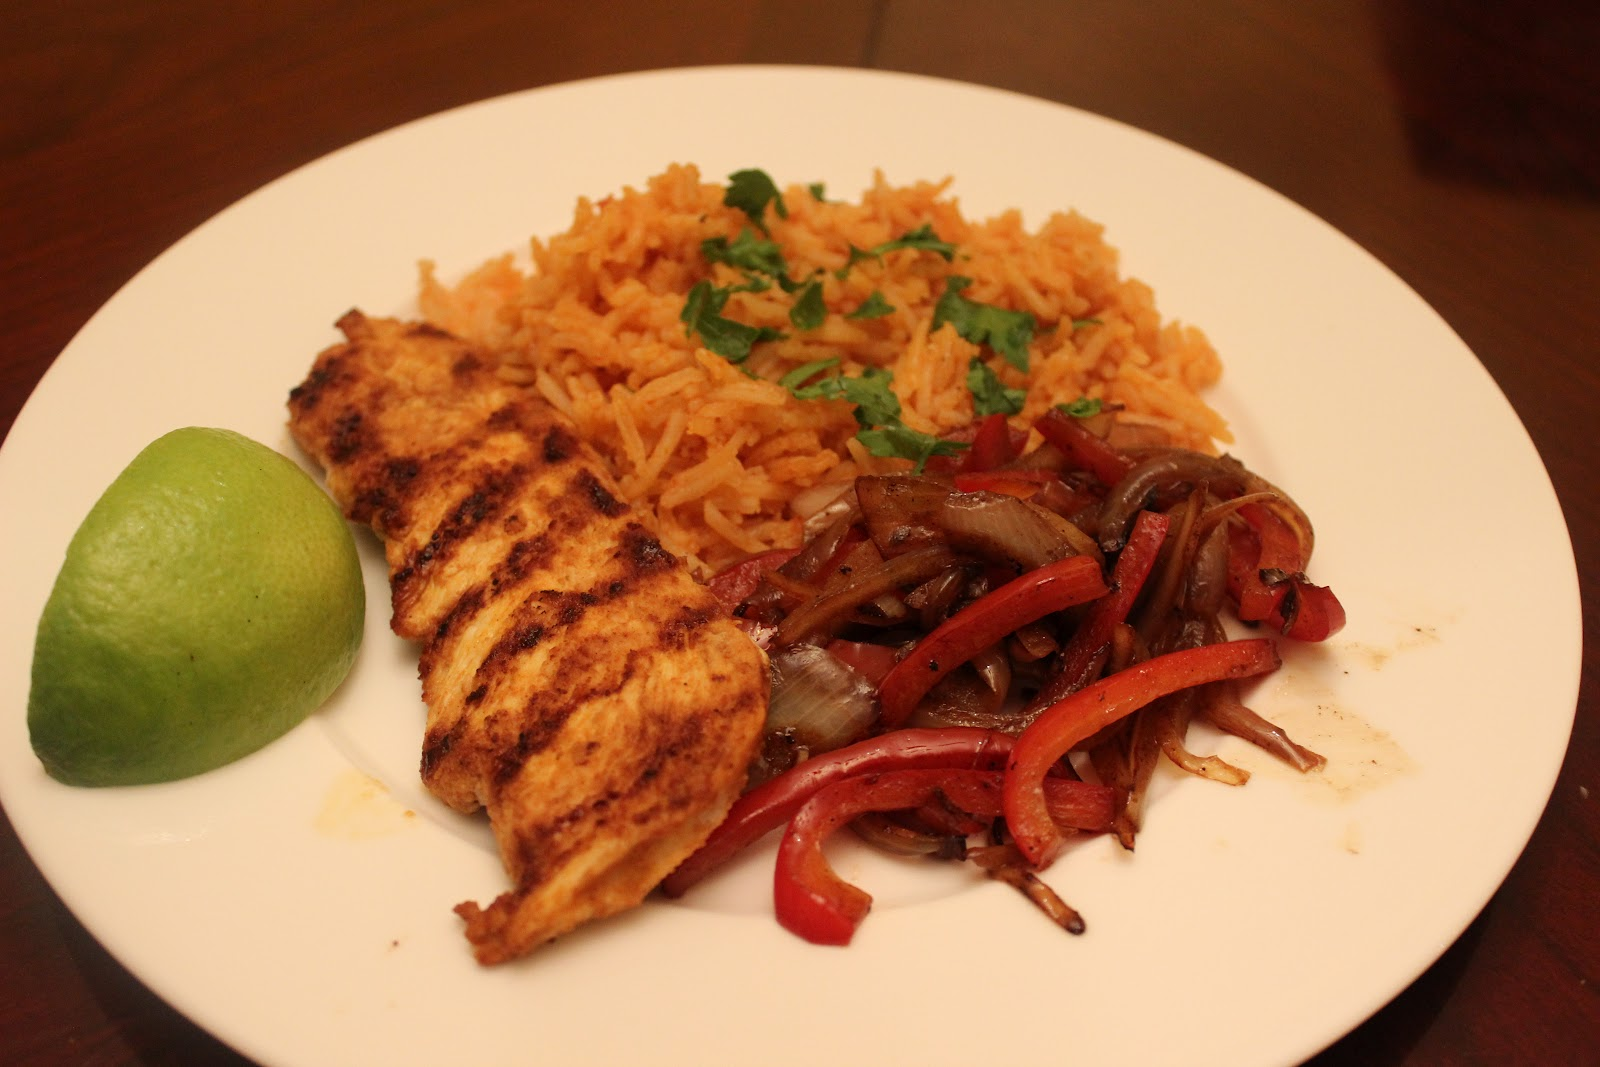 aTypical Day: Chili-Lime Chicken and Spanish Rice